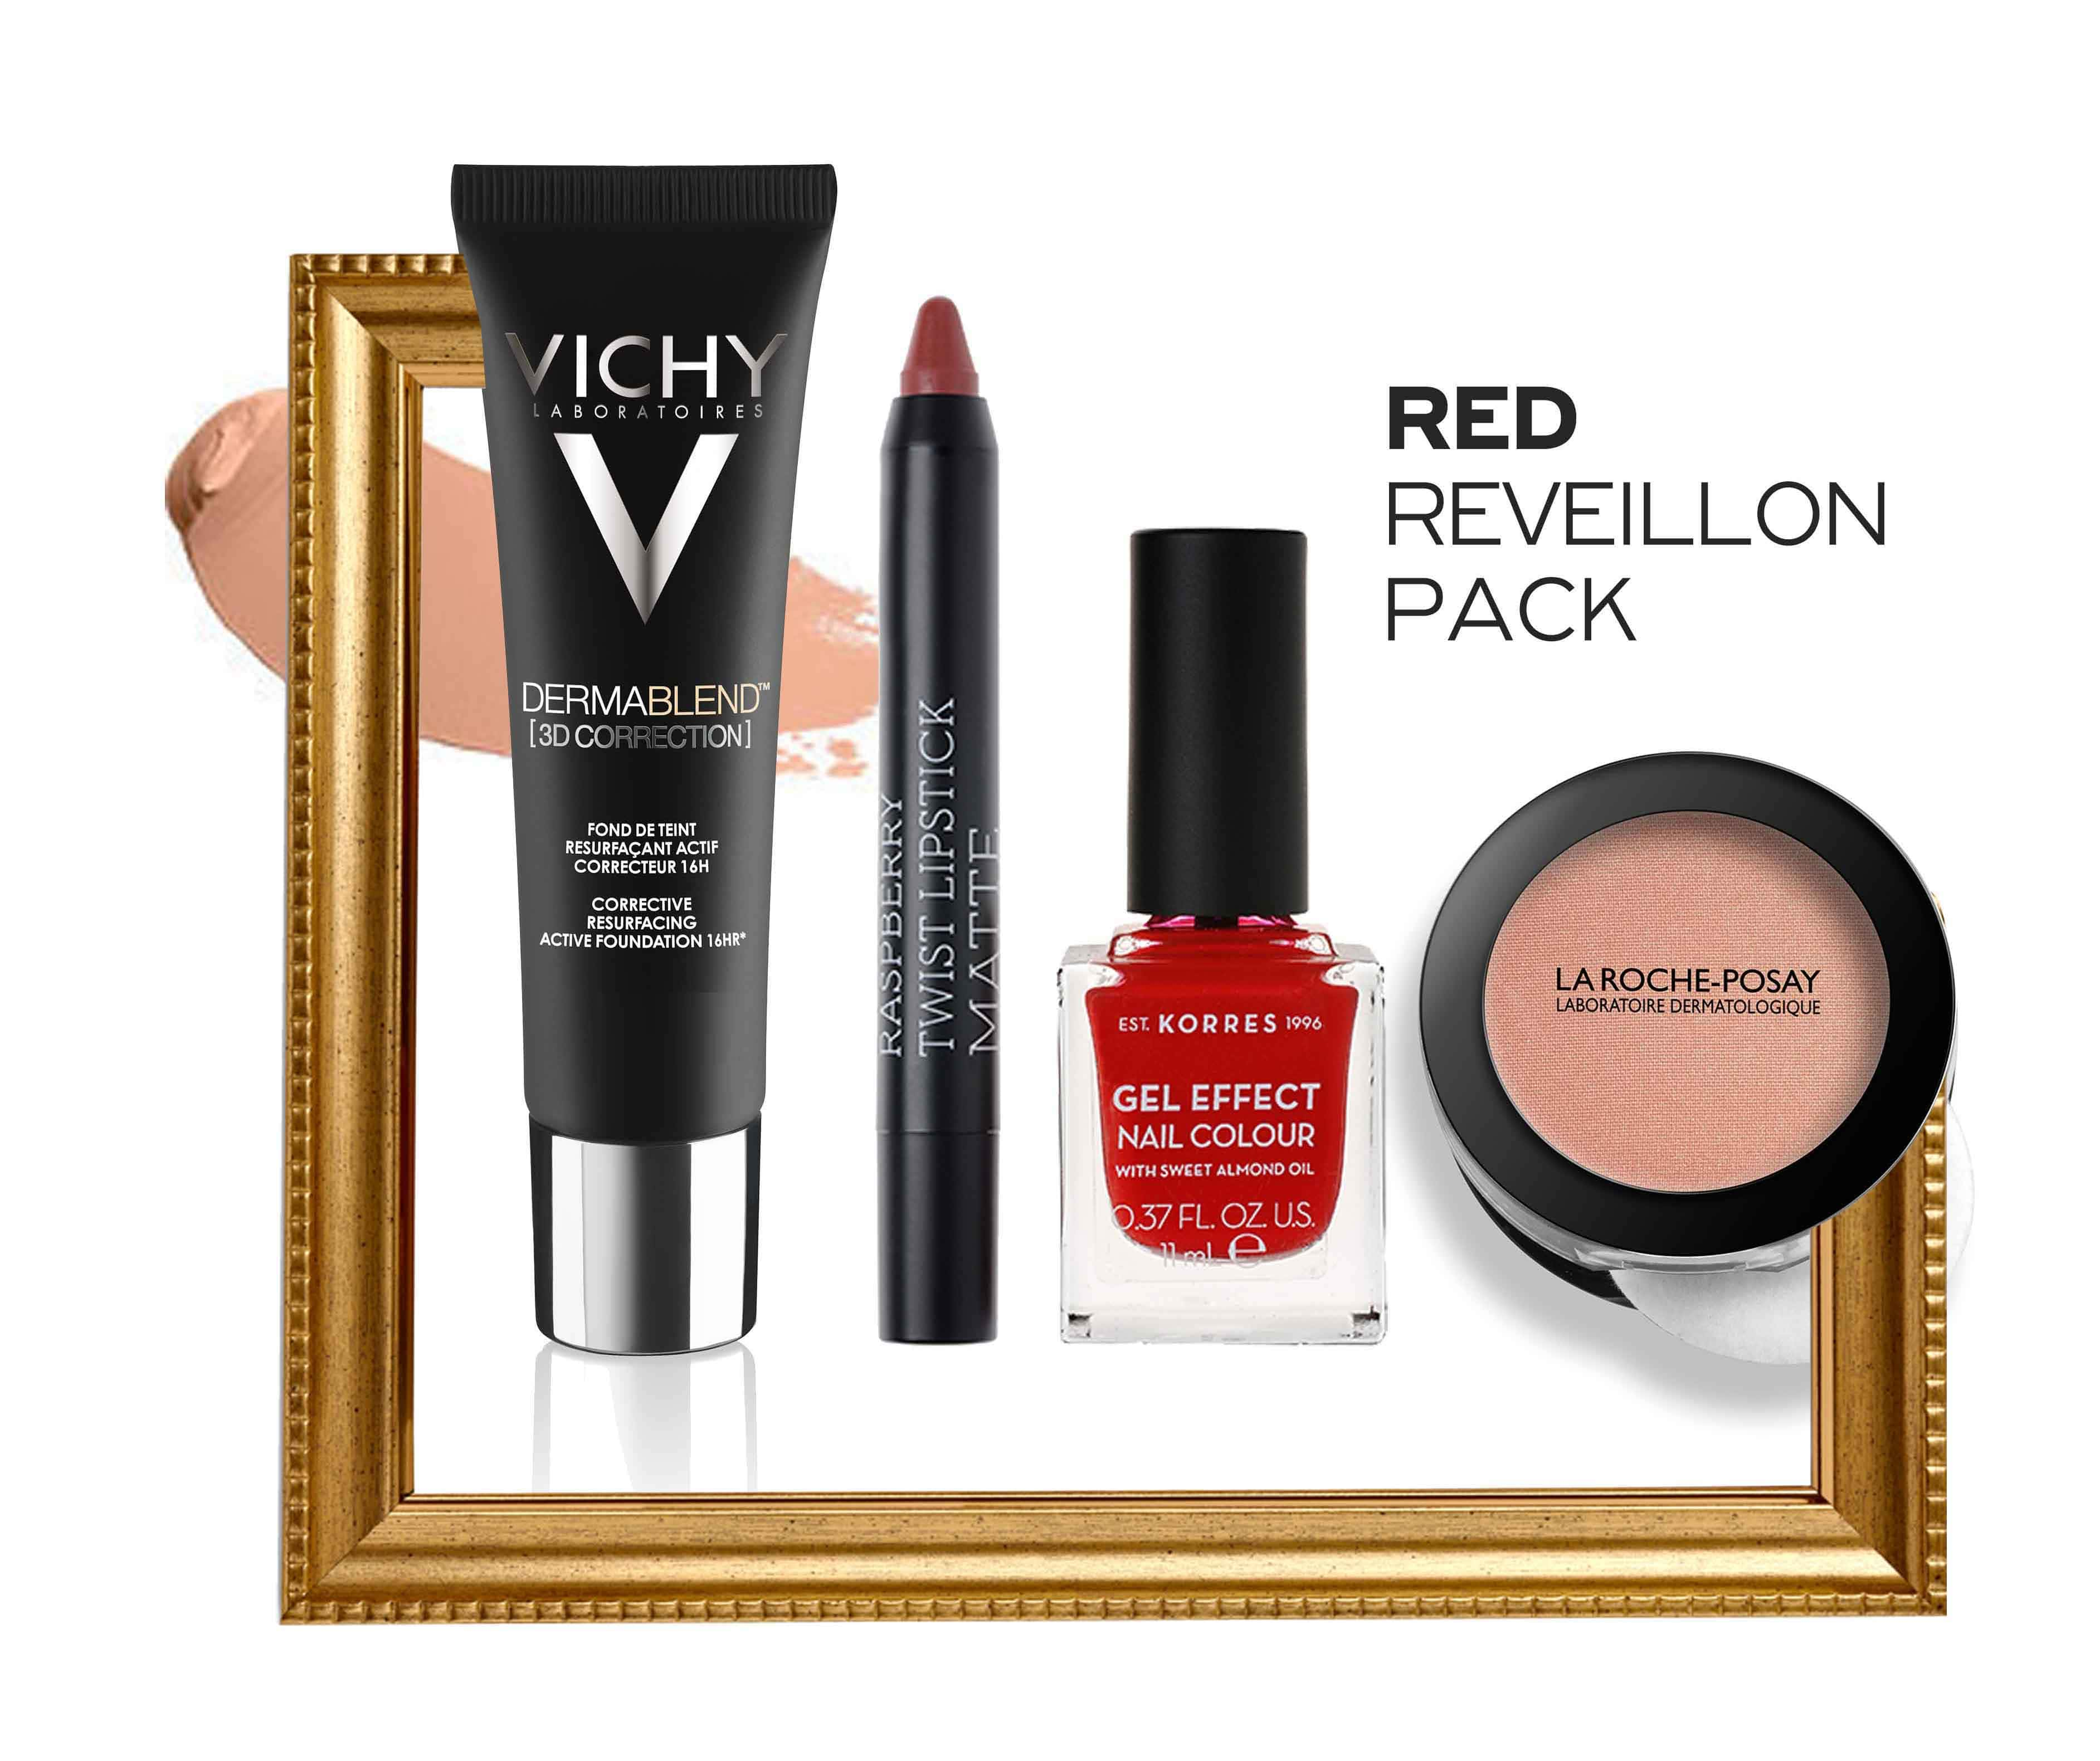 Red Reveillon Pack με Vichy Dermablend 3D Make Up, 30ml, Korres Twist Lipstick Matte Ruby Red Ματ Κραγιόν, 1.5ml, Korres Gel Effect Nail Colour No.53 Royal Red Βερνίκι Νυχιών, 11ml & La Roche Posay Toleriane Teint Blush No. 02 Ρουζ, 5gr